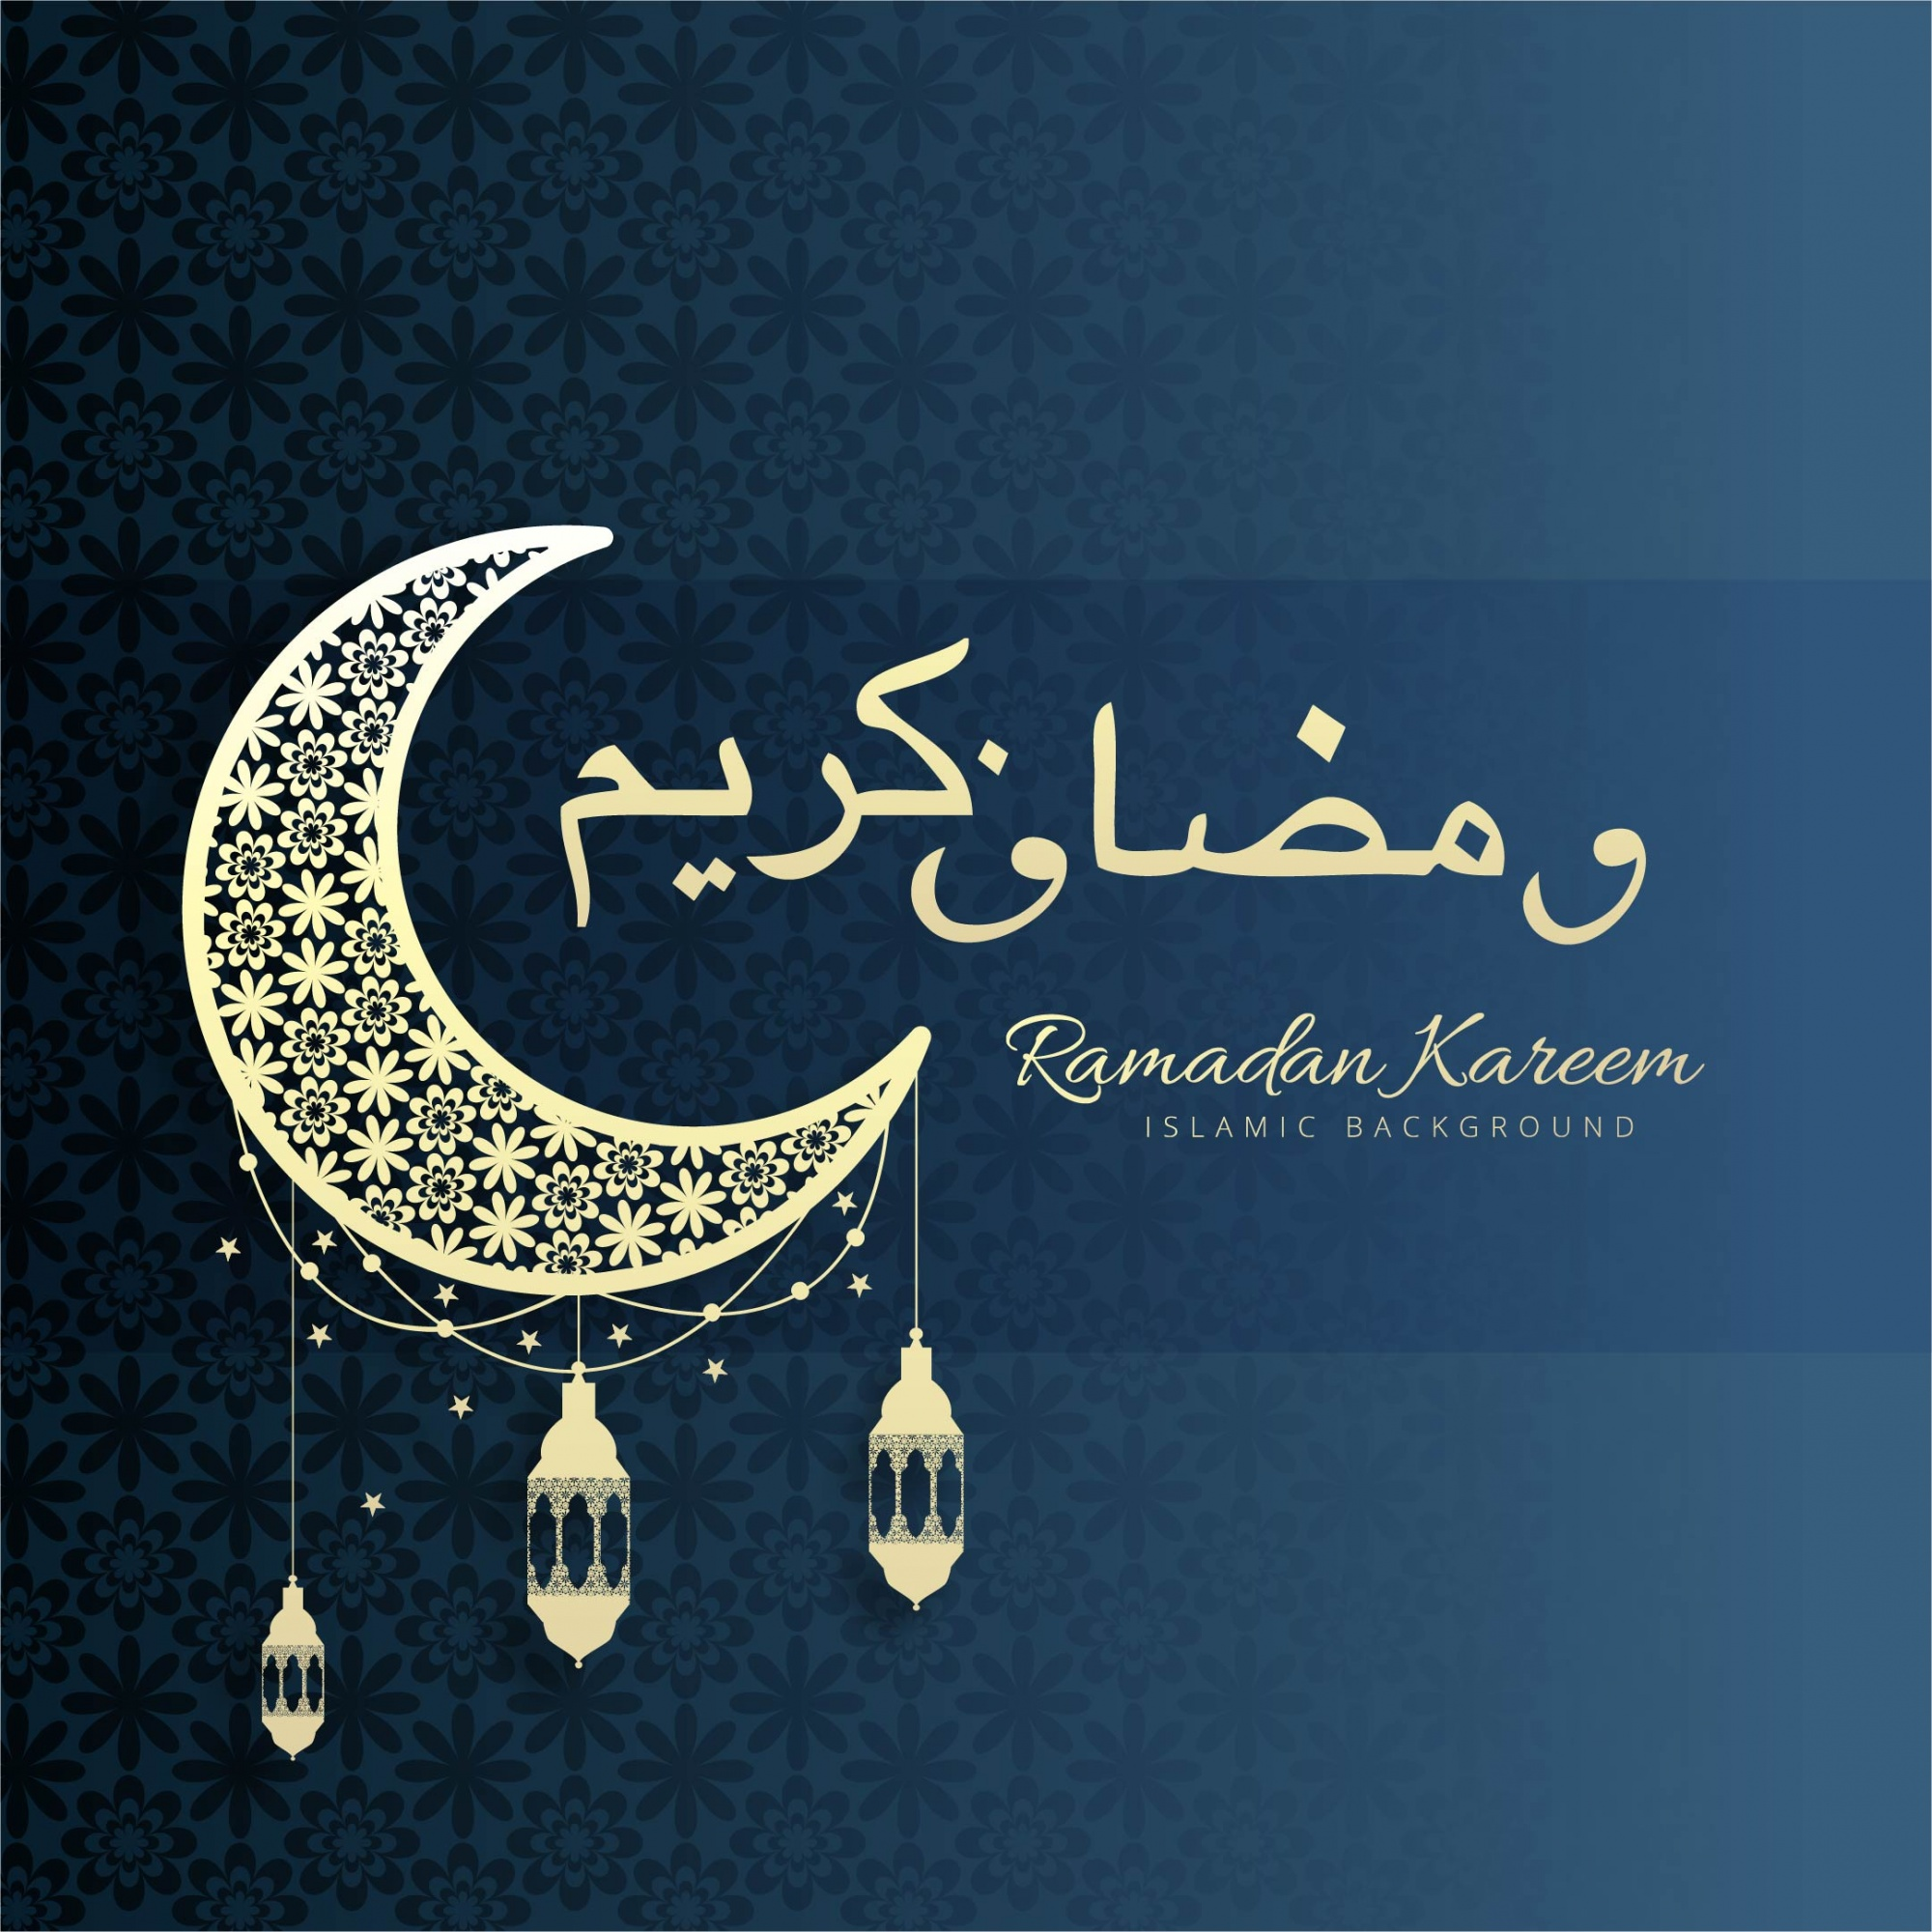 Ornamental ramadan kareem background